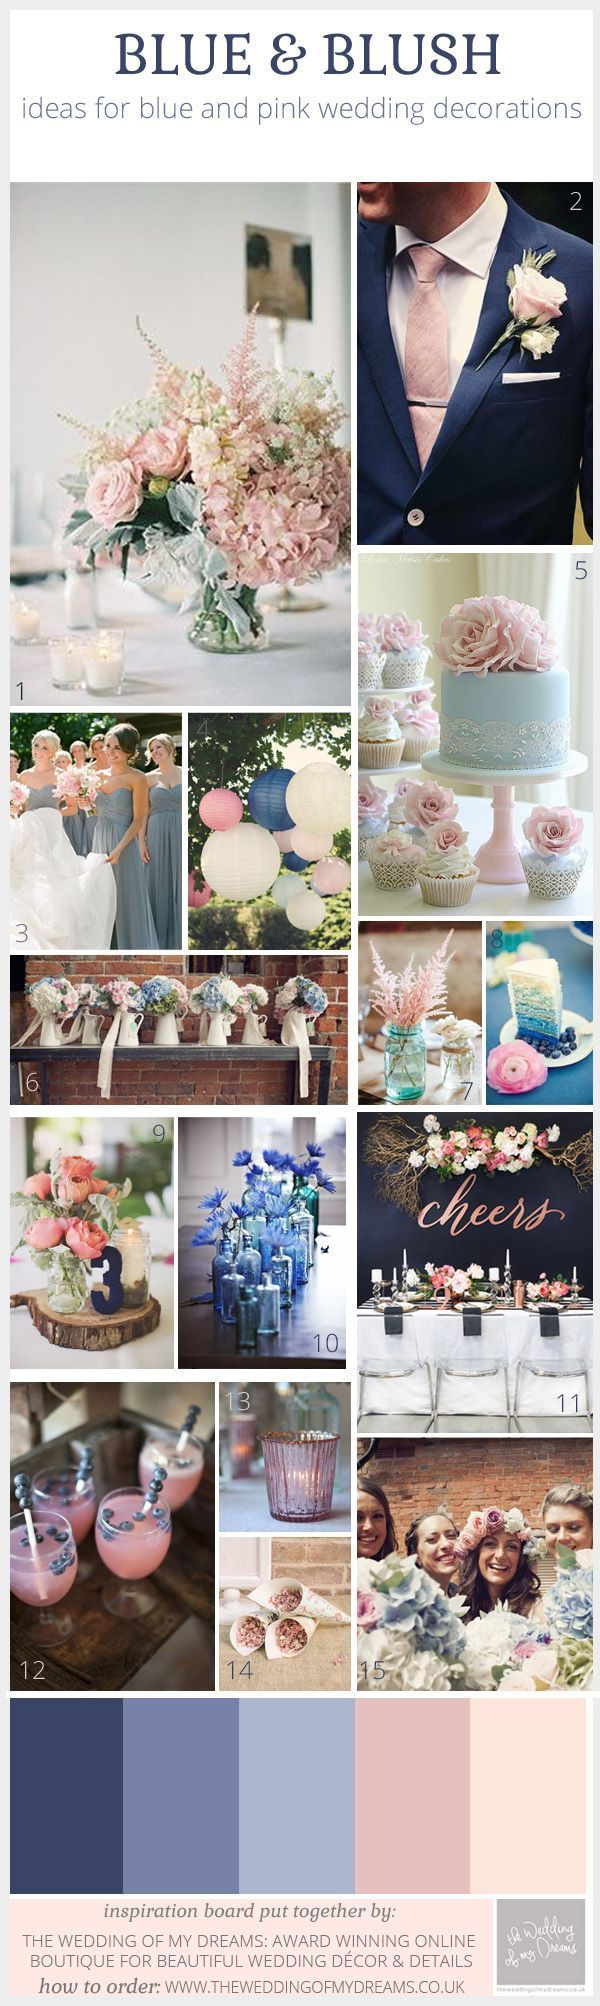 "What a gorgeous color scheme, ""Blue and Blush Pink"" wedding decorations"